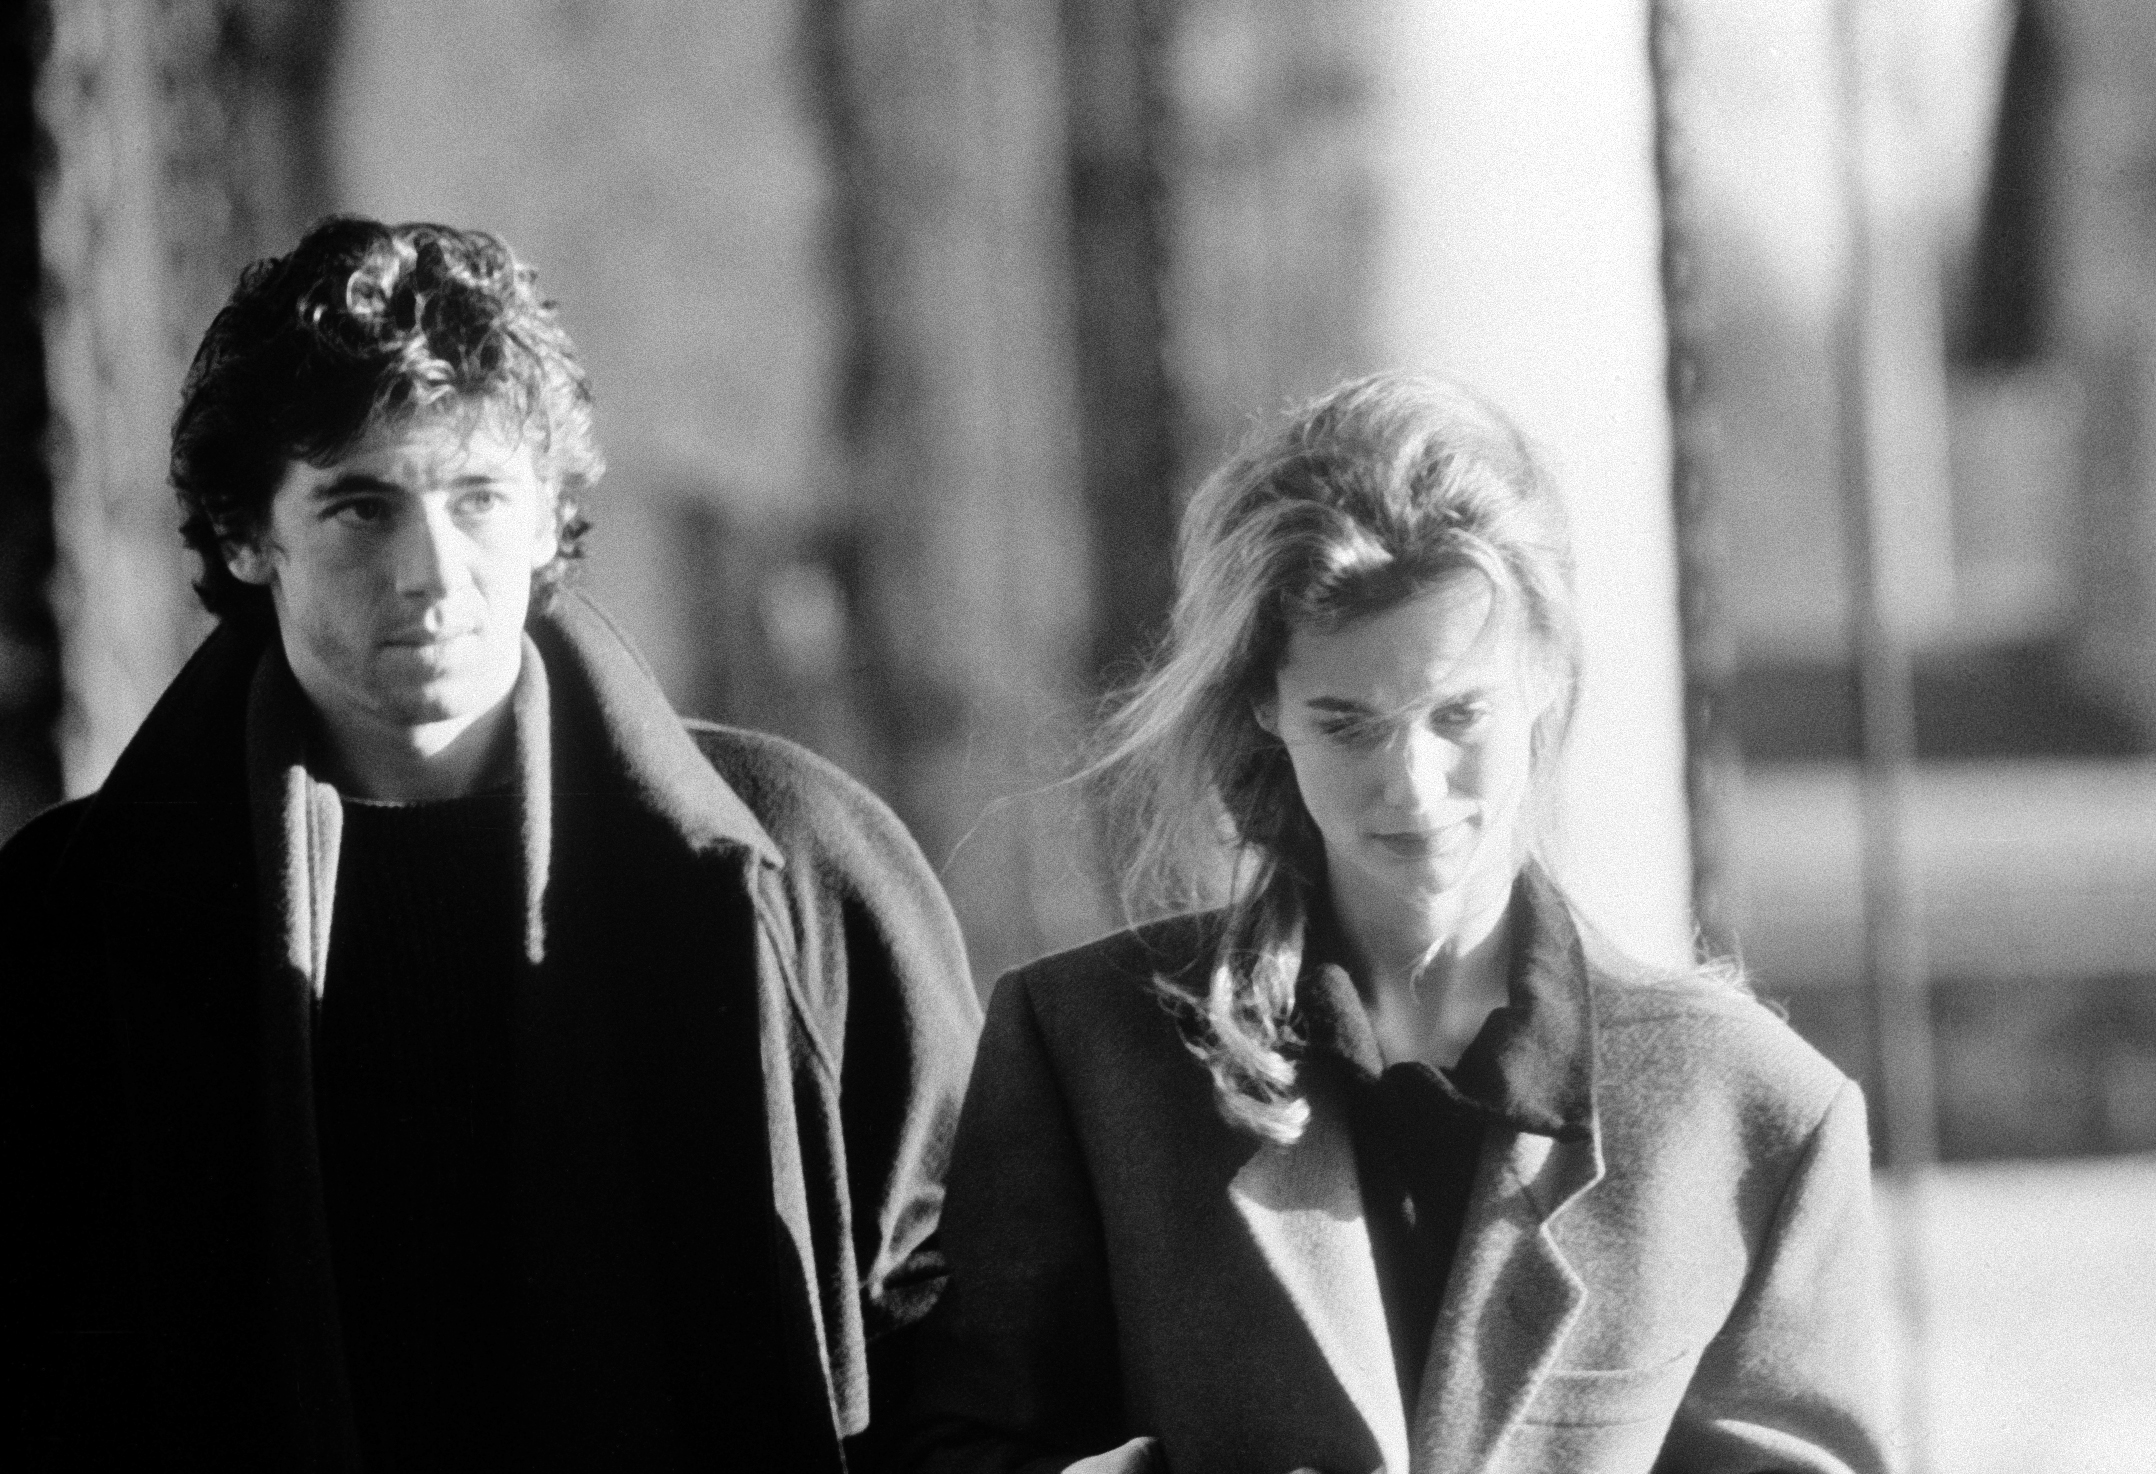 Patrick Bruel and Marie-Sophie L. in Attention bandits! (1986)